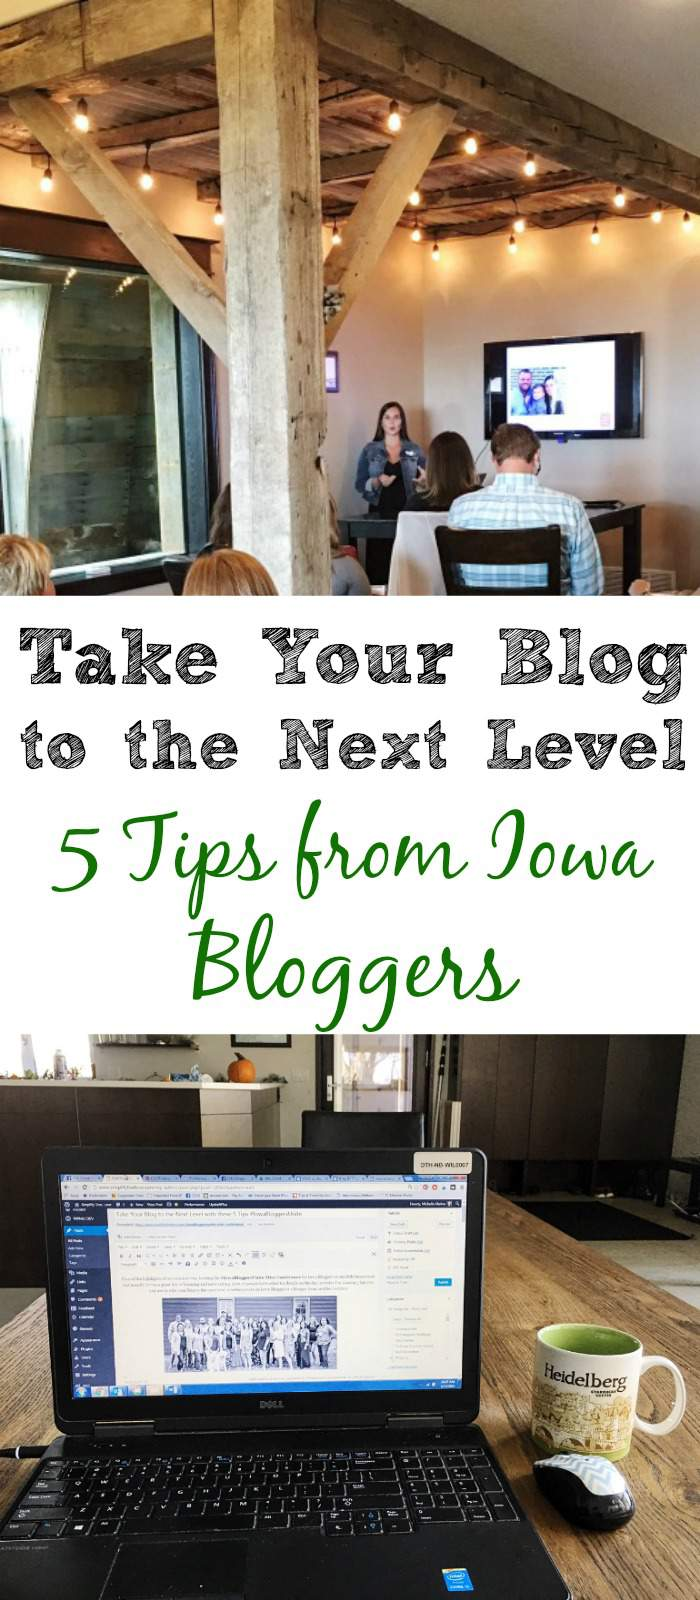 These tips from many Iowa Bloggers will help you take your blogging to the next level! IowaBloggersUnite2016